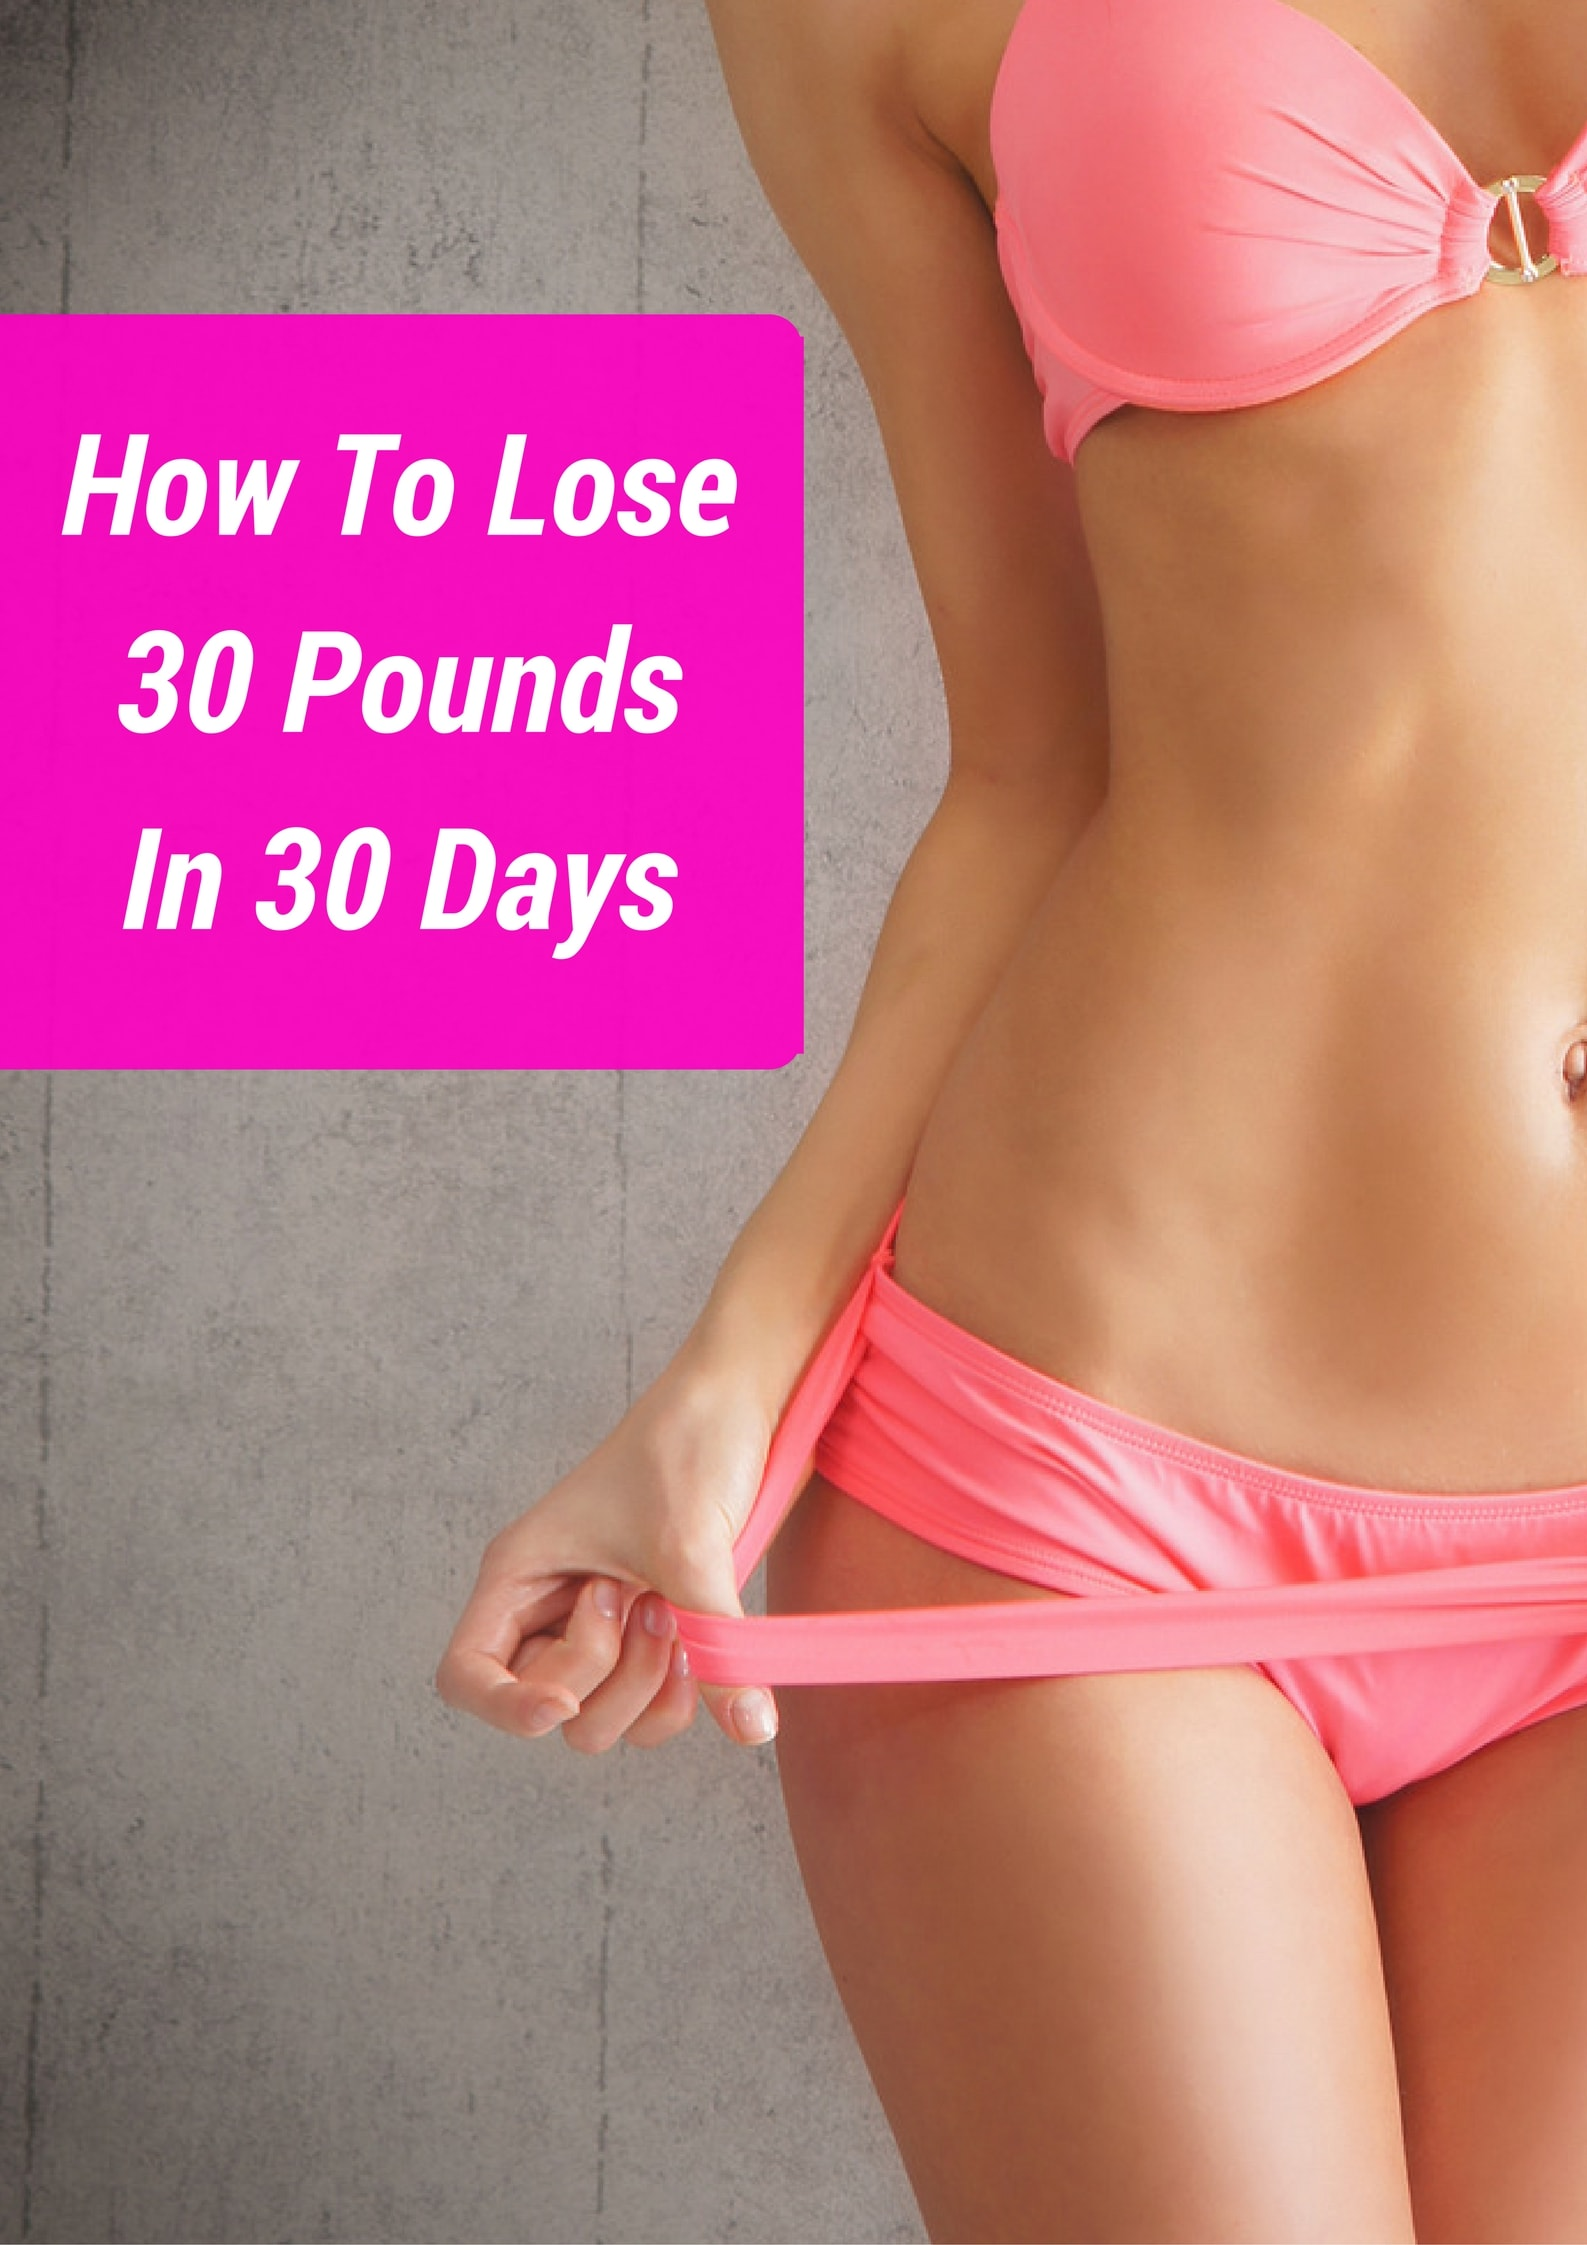 How To Lose 30 Pounds In 30 Days 12 Steps Anyone Can Do